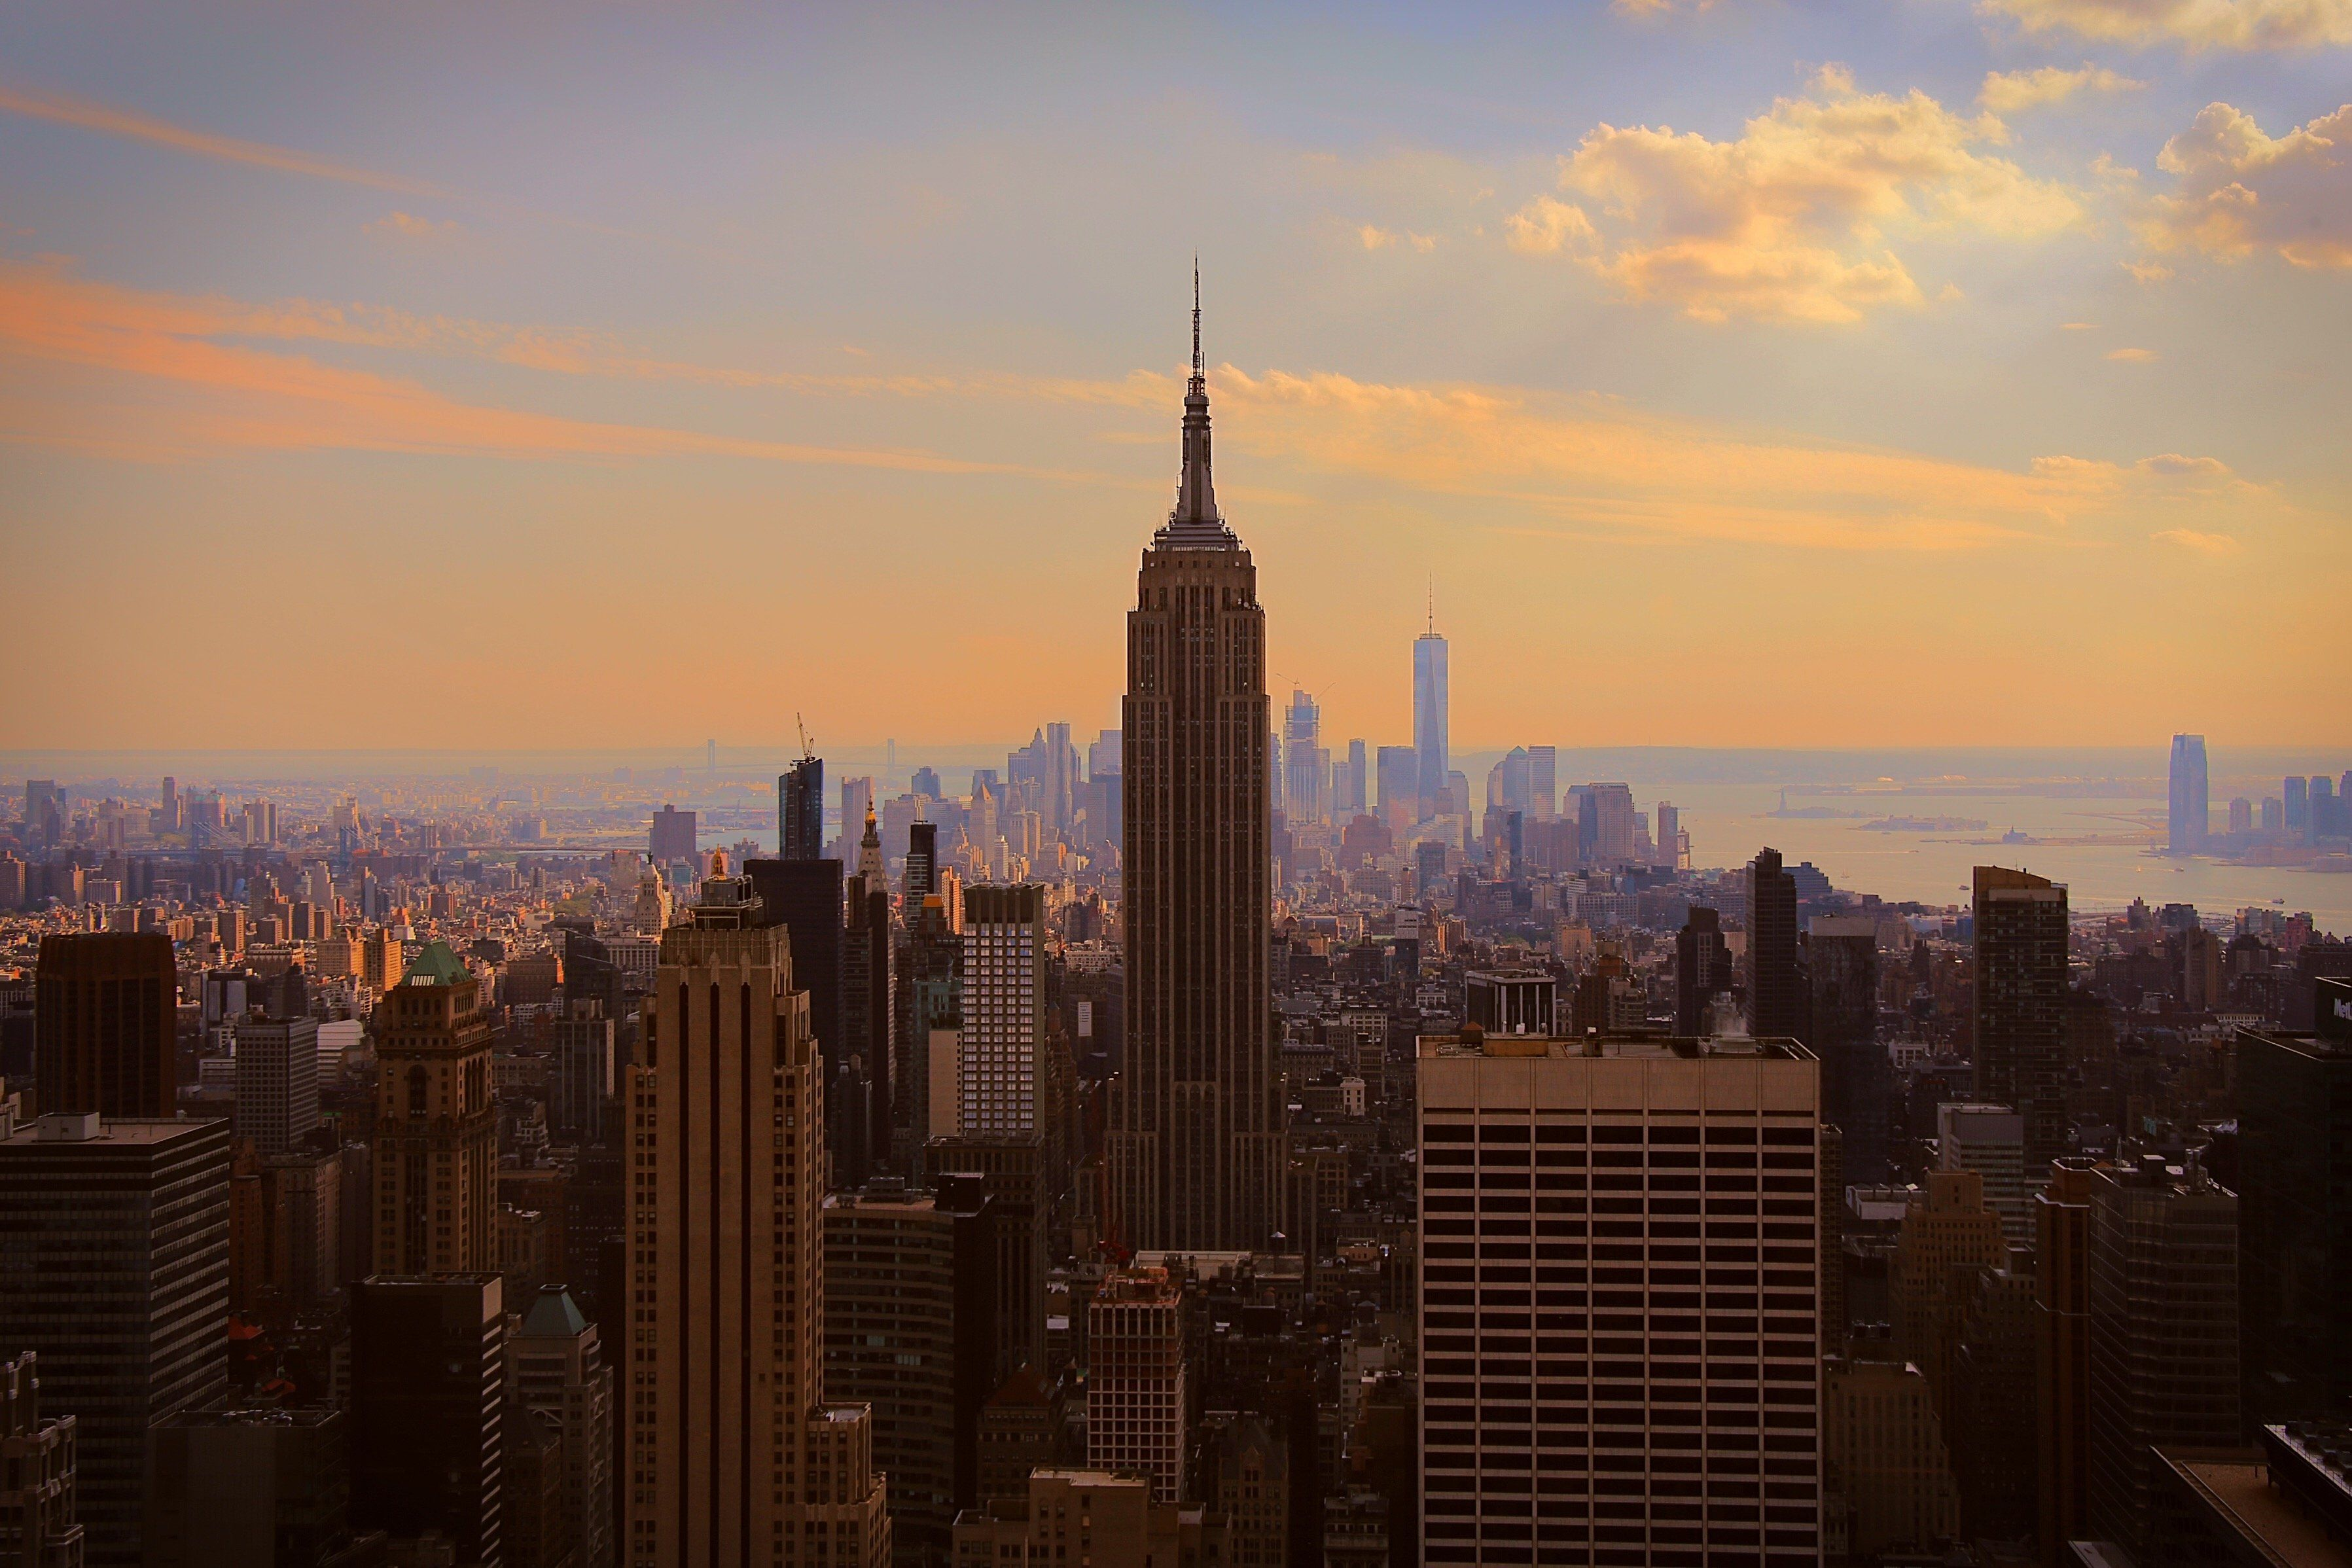 Aerial vies of Cityscape of New York city On Sunset with Empire State building